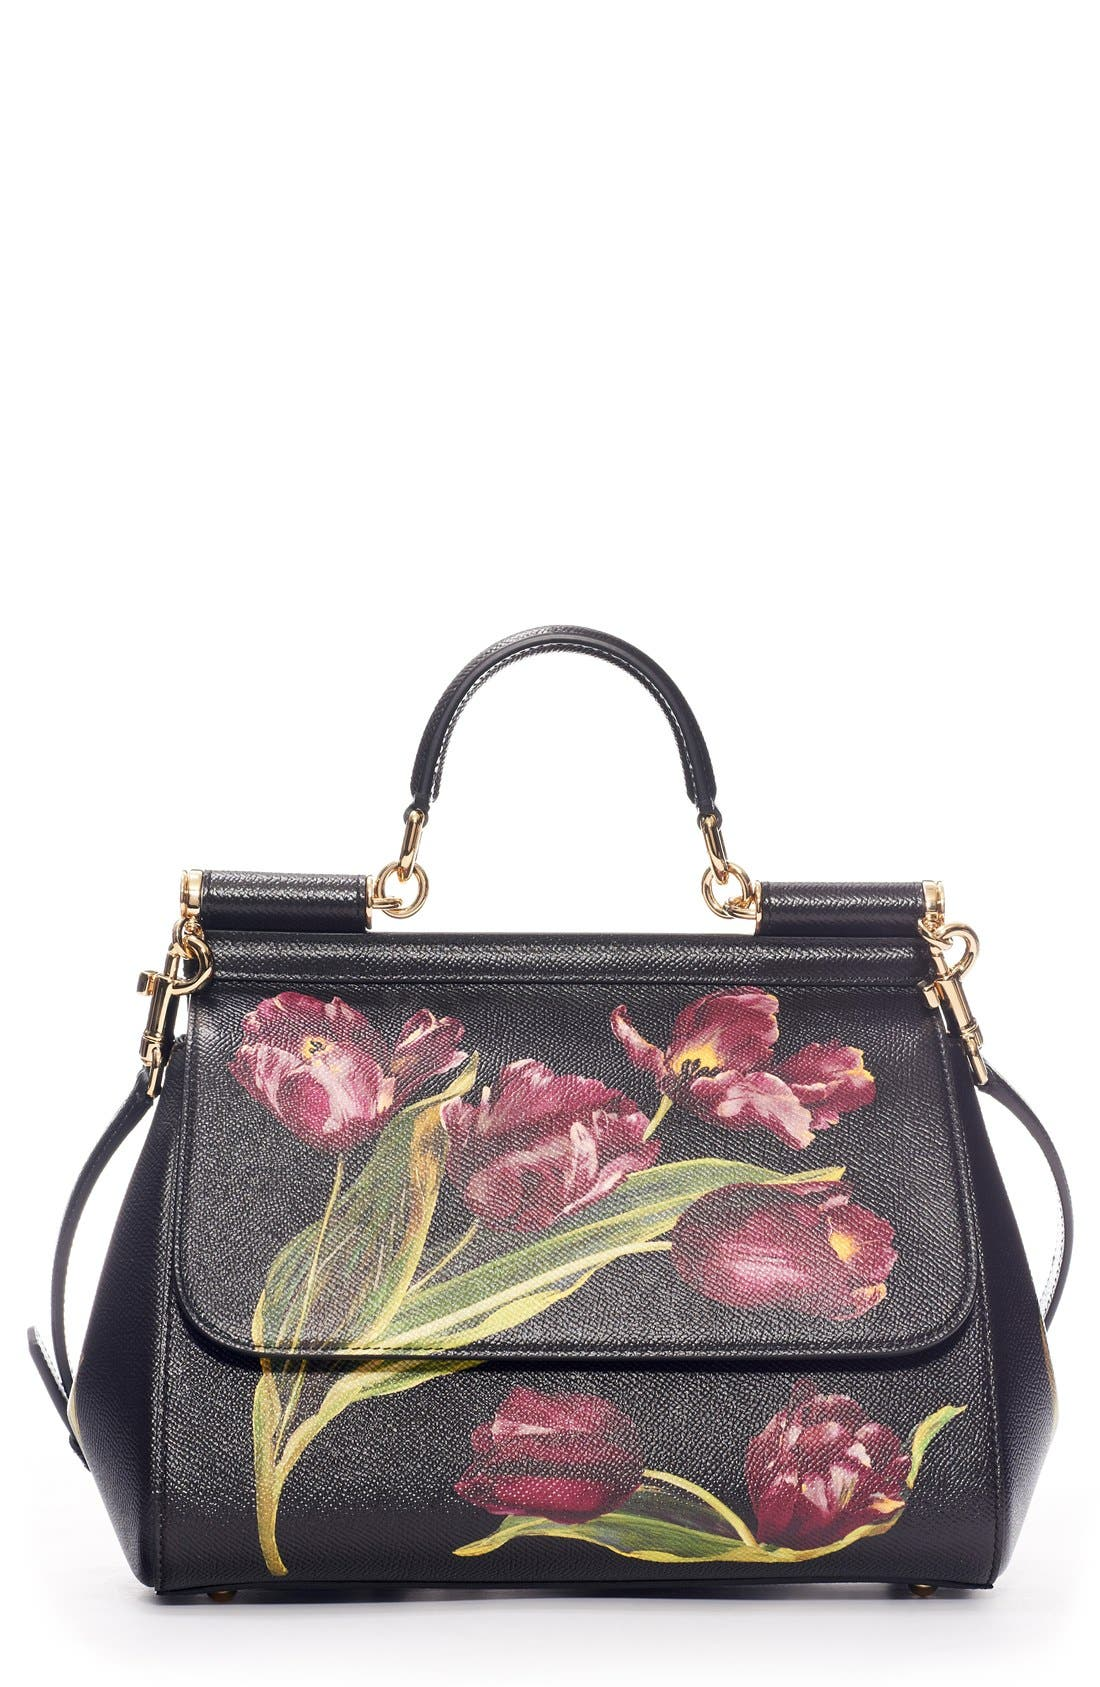 DOLCE&GABBANA 'Small Miss Sicily' Tulip Print Leather Satchel